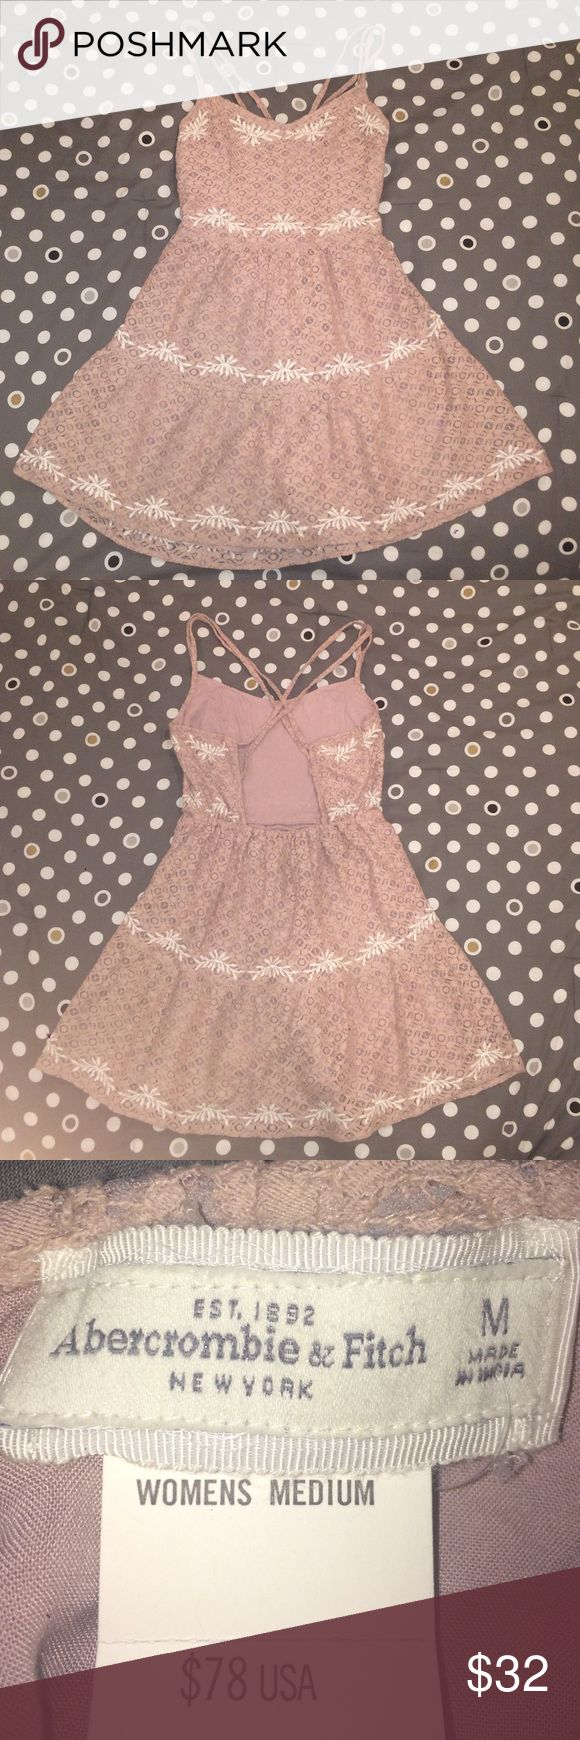 Super cute dress from Abercrombie and Fitch! This dress is a blush color and features beautiful crochet detail with white accents. Abercrombie & Fitch Dresses Backless